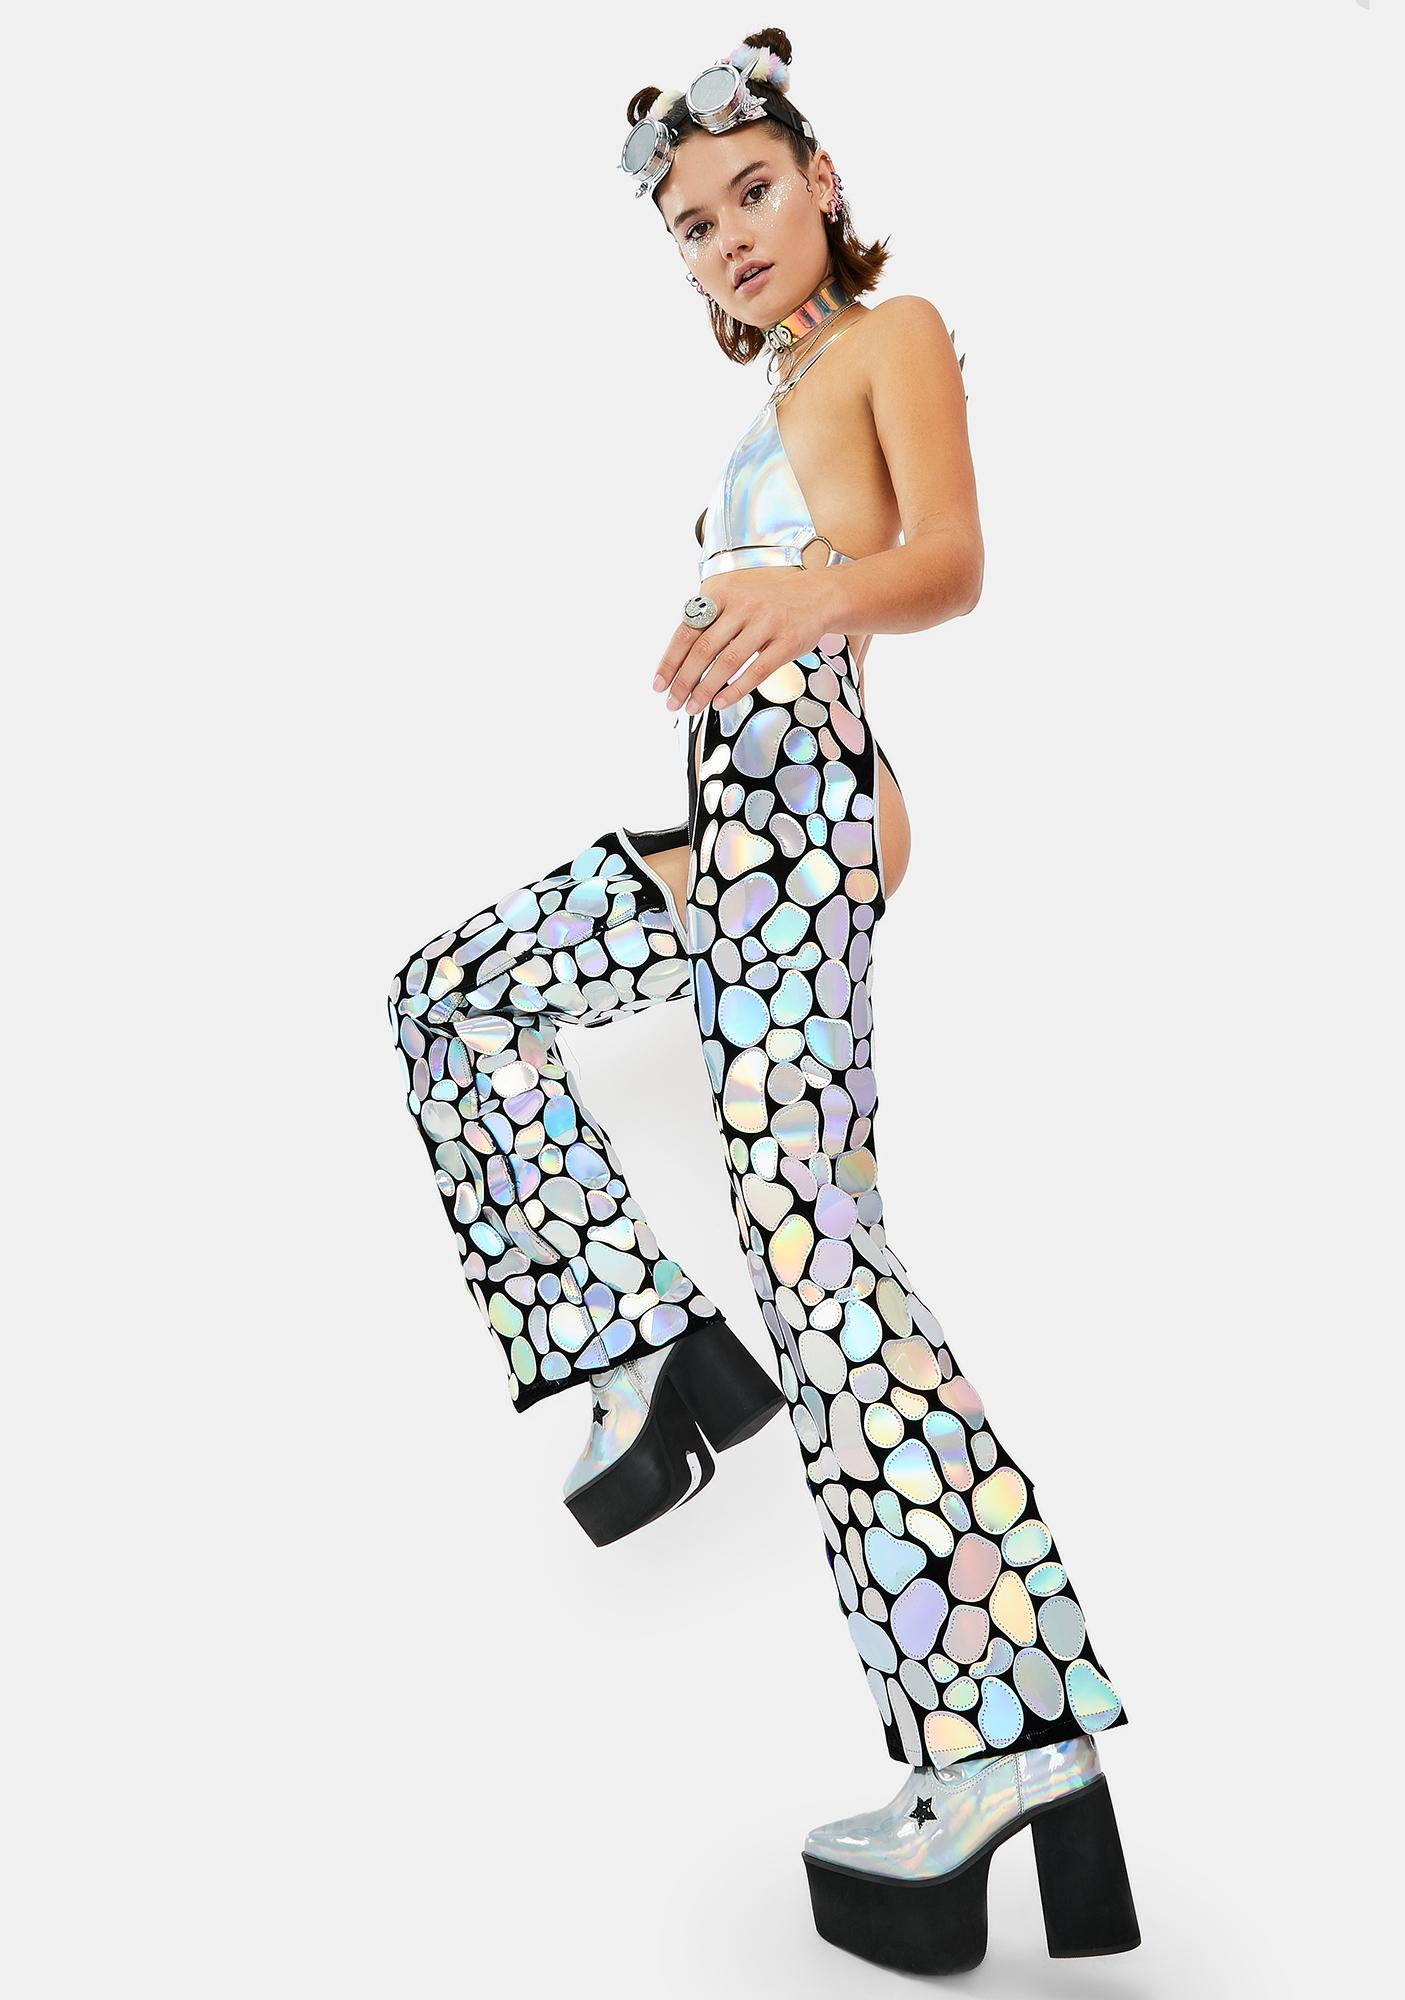 Roma Rave Rodeo Holographic Chaps